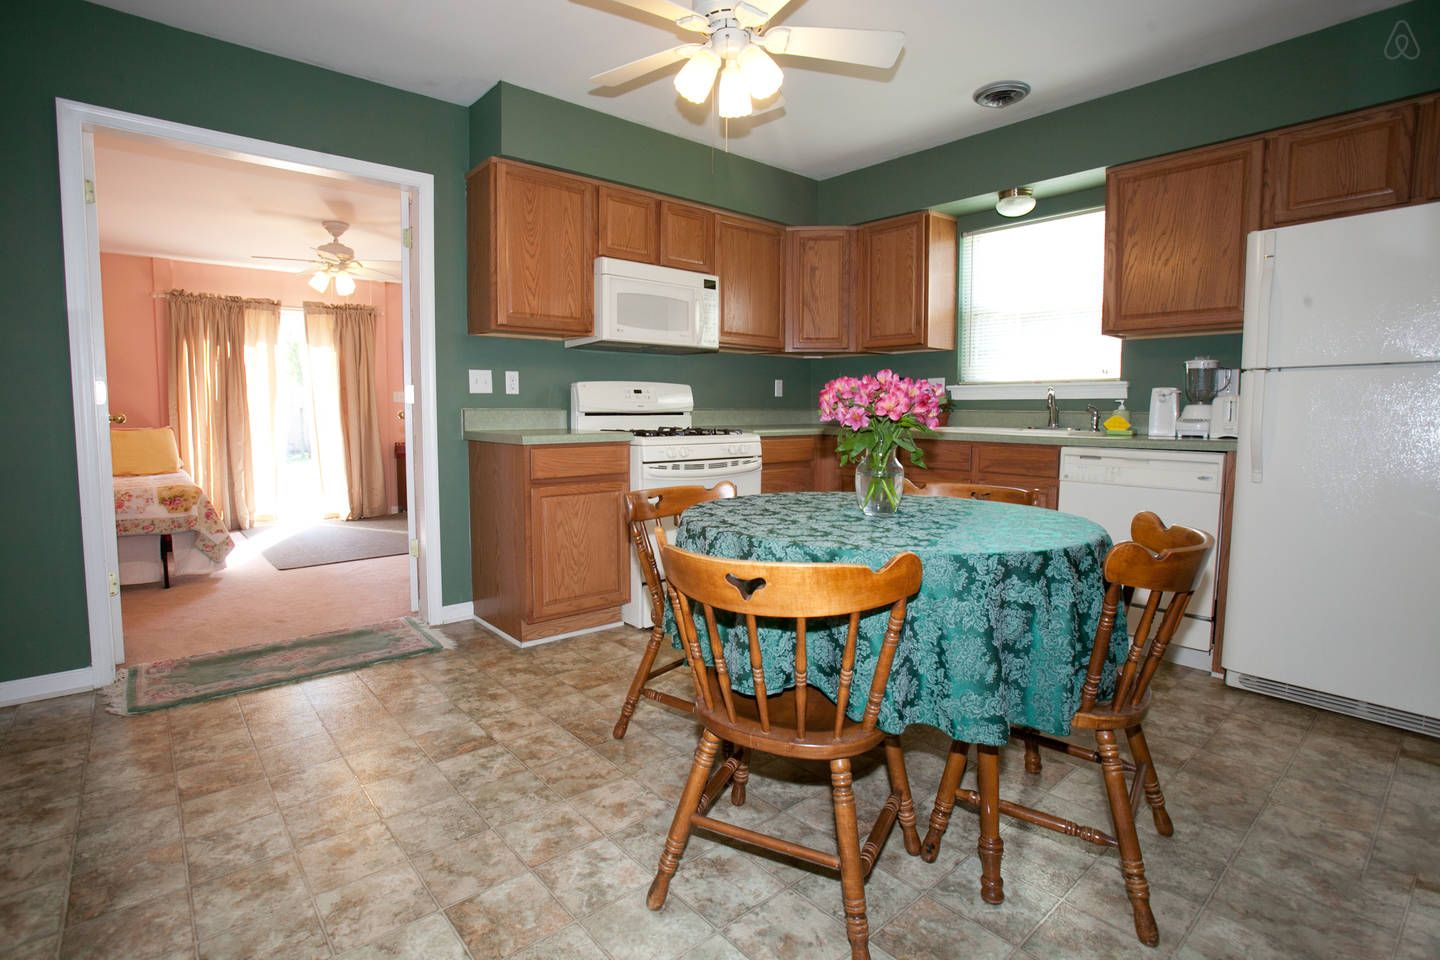 3Bed/2Ba Townhome w/WiFi near UVA~ - vacation rental in Charlottesville, Virginia. View more: #CharlottesvilleVirginiaVacationRentals